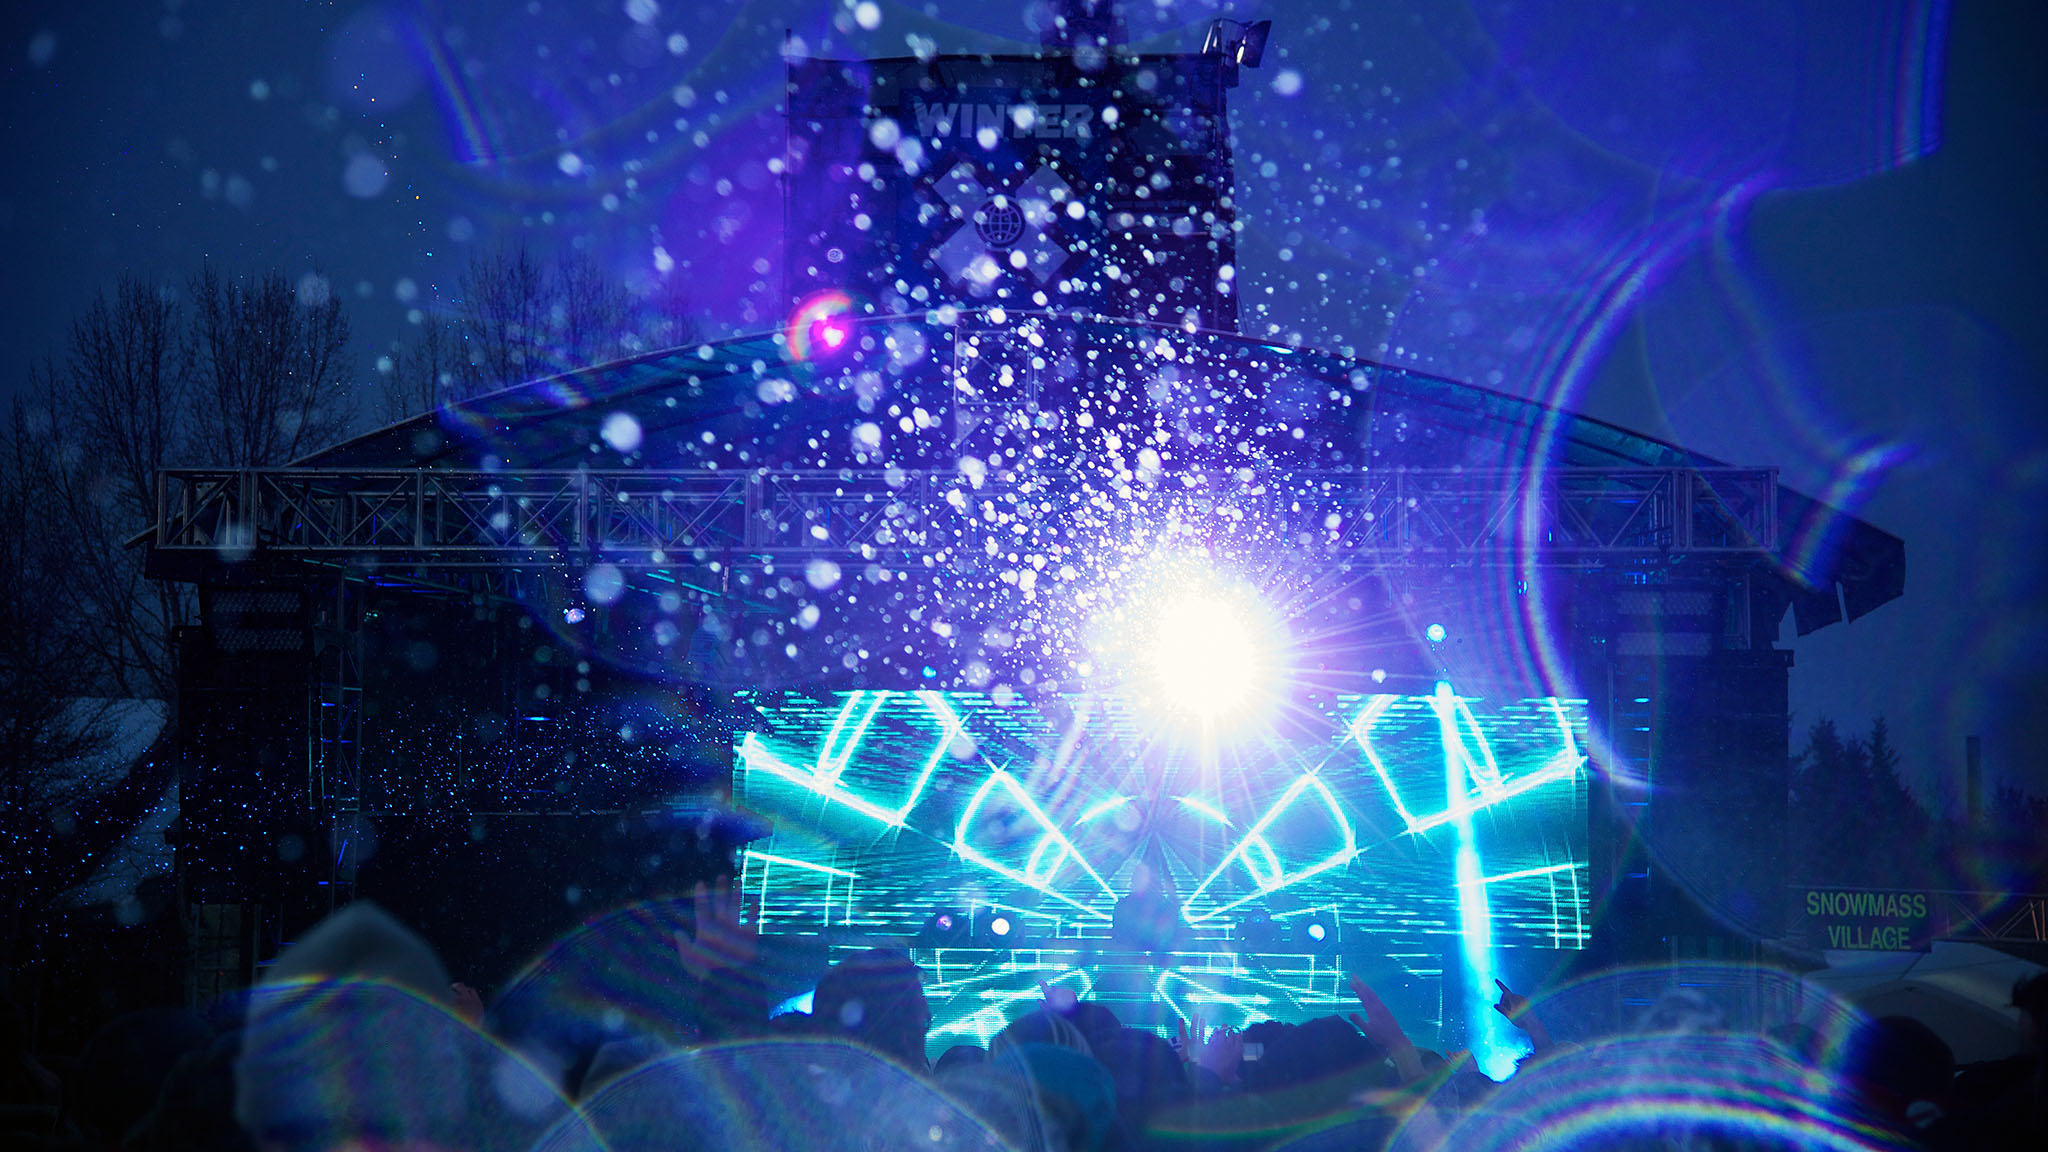 Calvin Harris' stage setup for his X Games MUSIC show at Buttermilk brought another dimension to the concert.